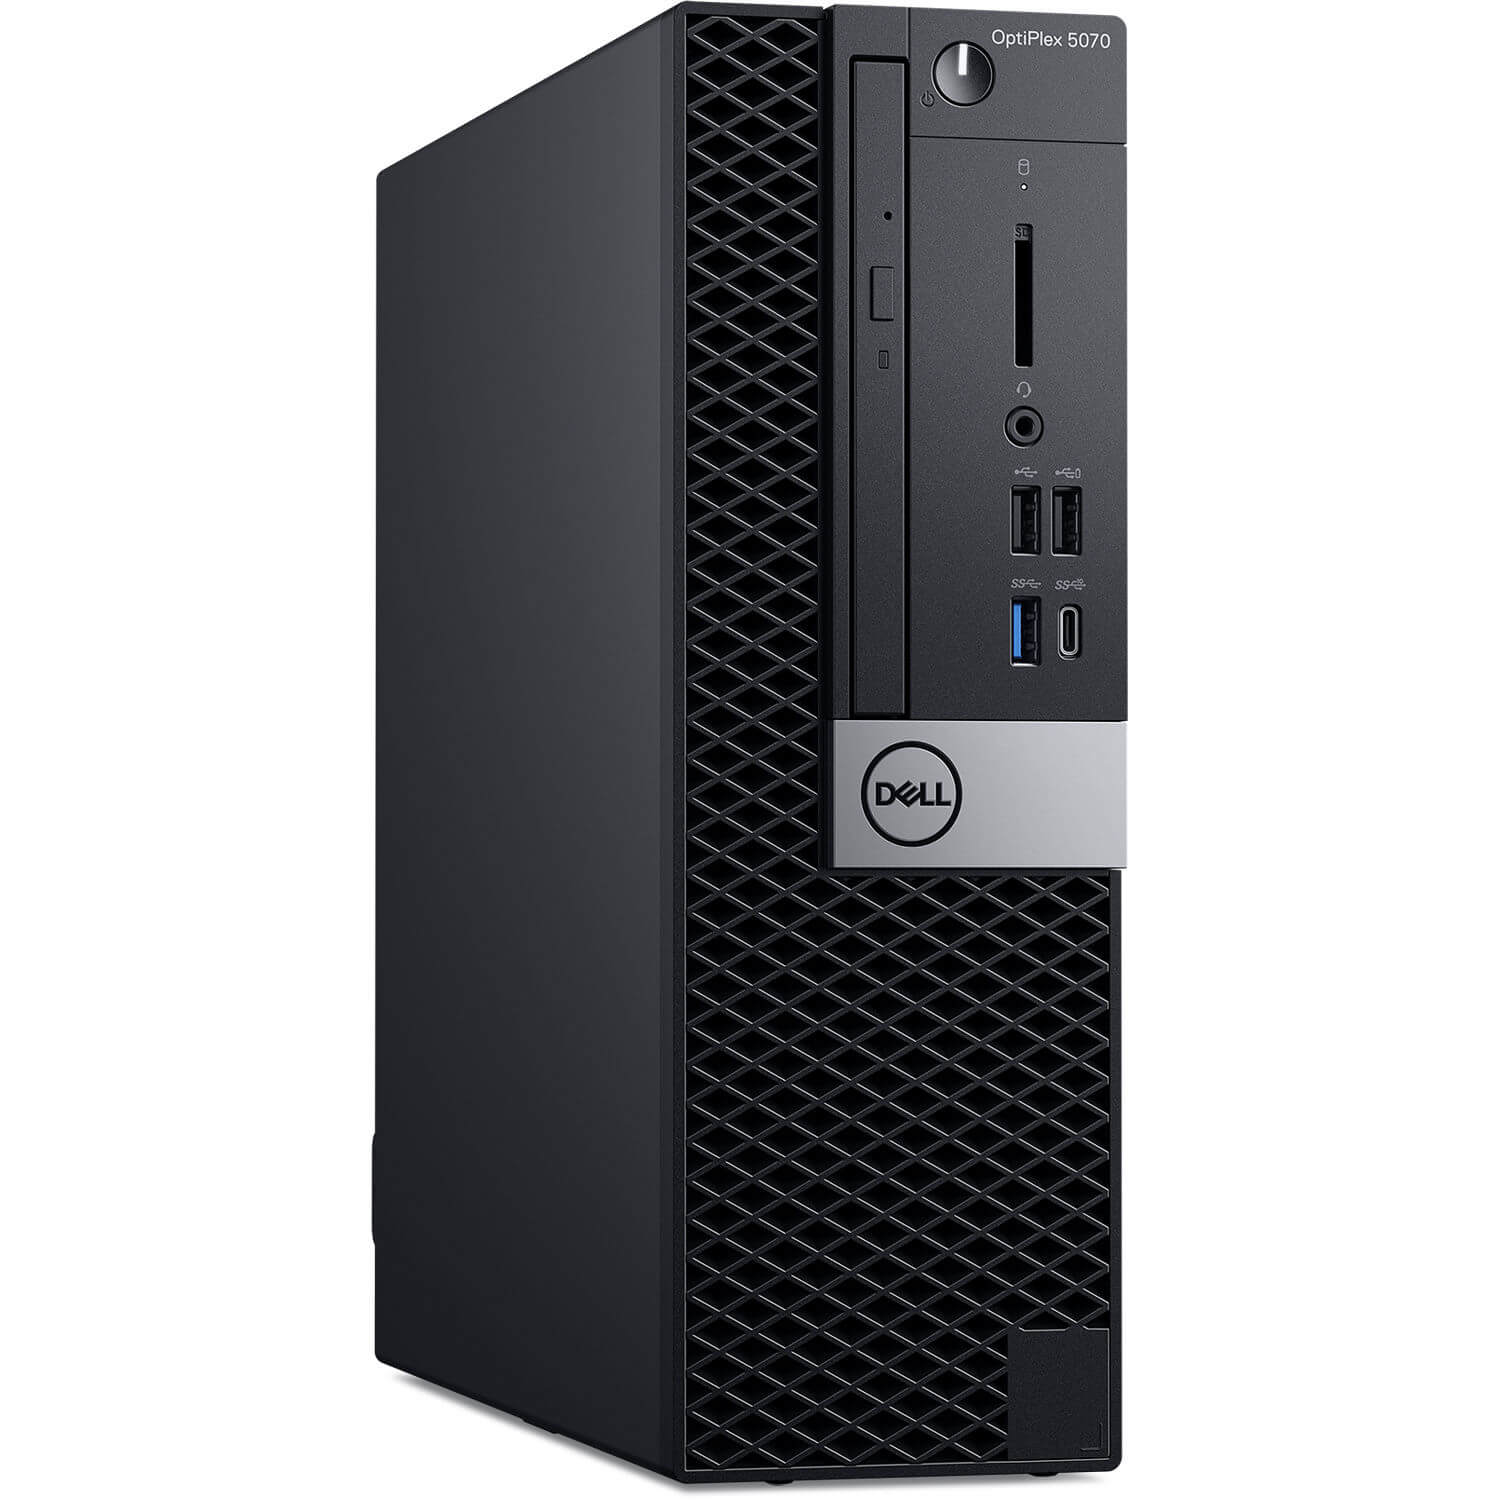 Máy Bộ PC Dell OptiPlex 5070 SFF (i7-9700/8GB RAM/1TB HDD/DVDRW/K+M/Linux)